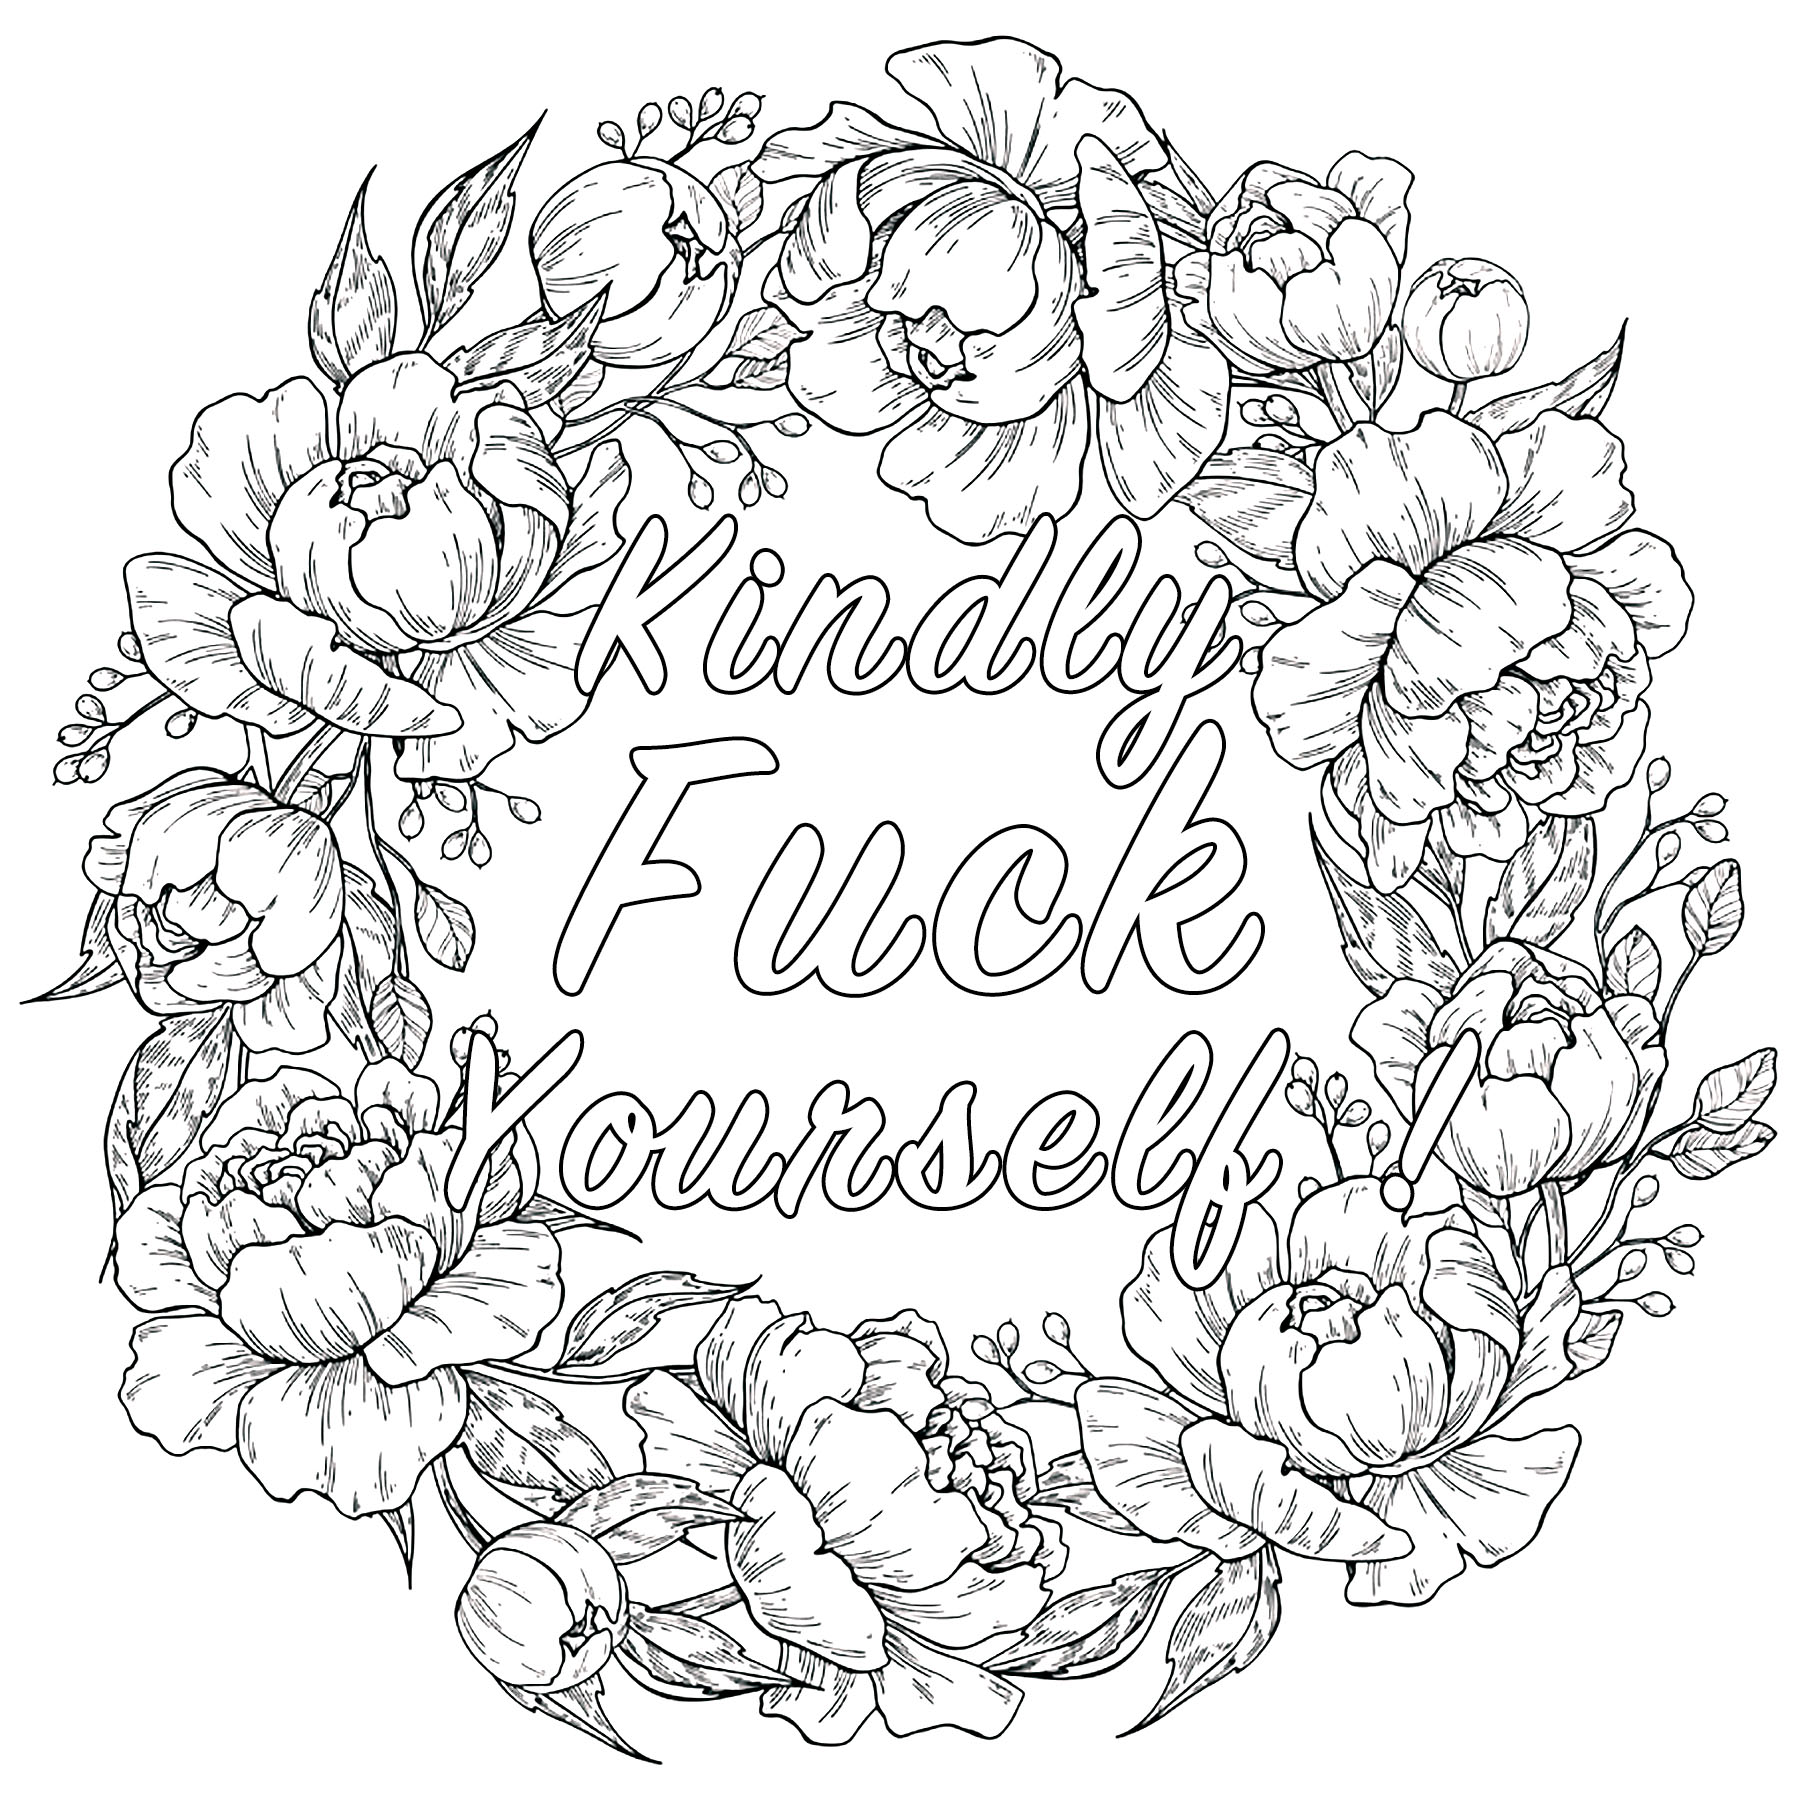 - Kindly Fuck Yourself Swear Word Coloring Page - Swear Word Adult